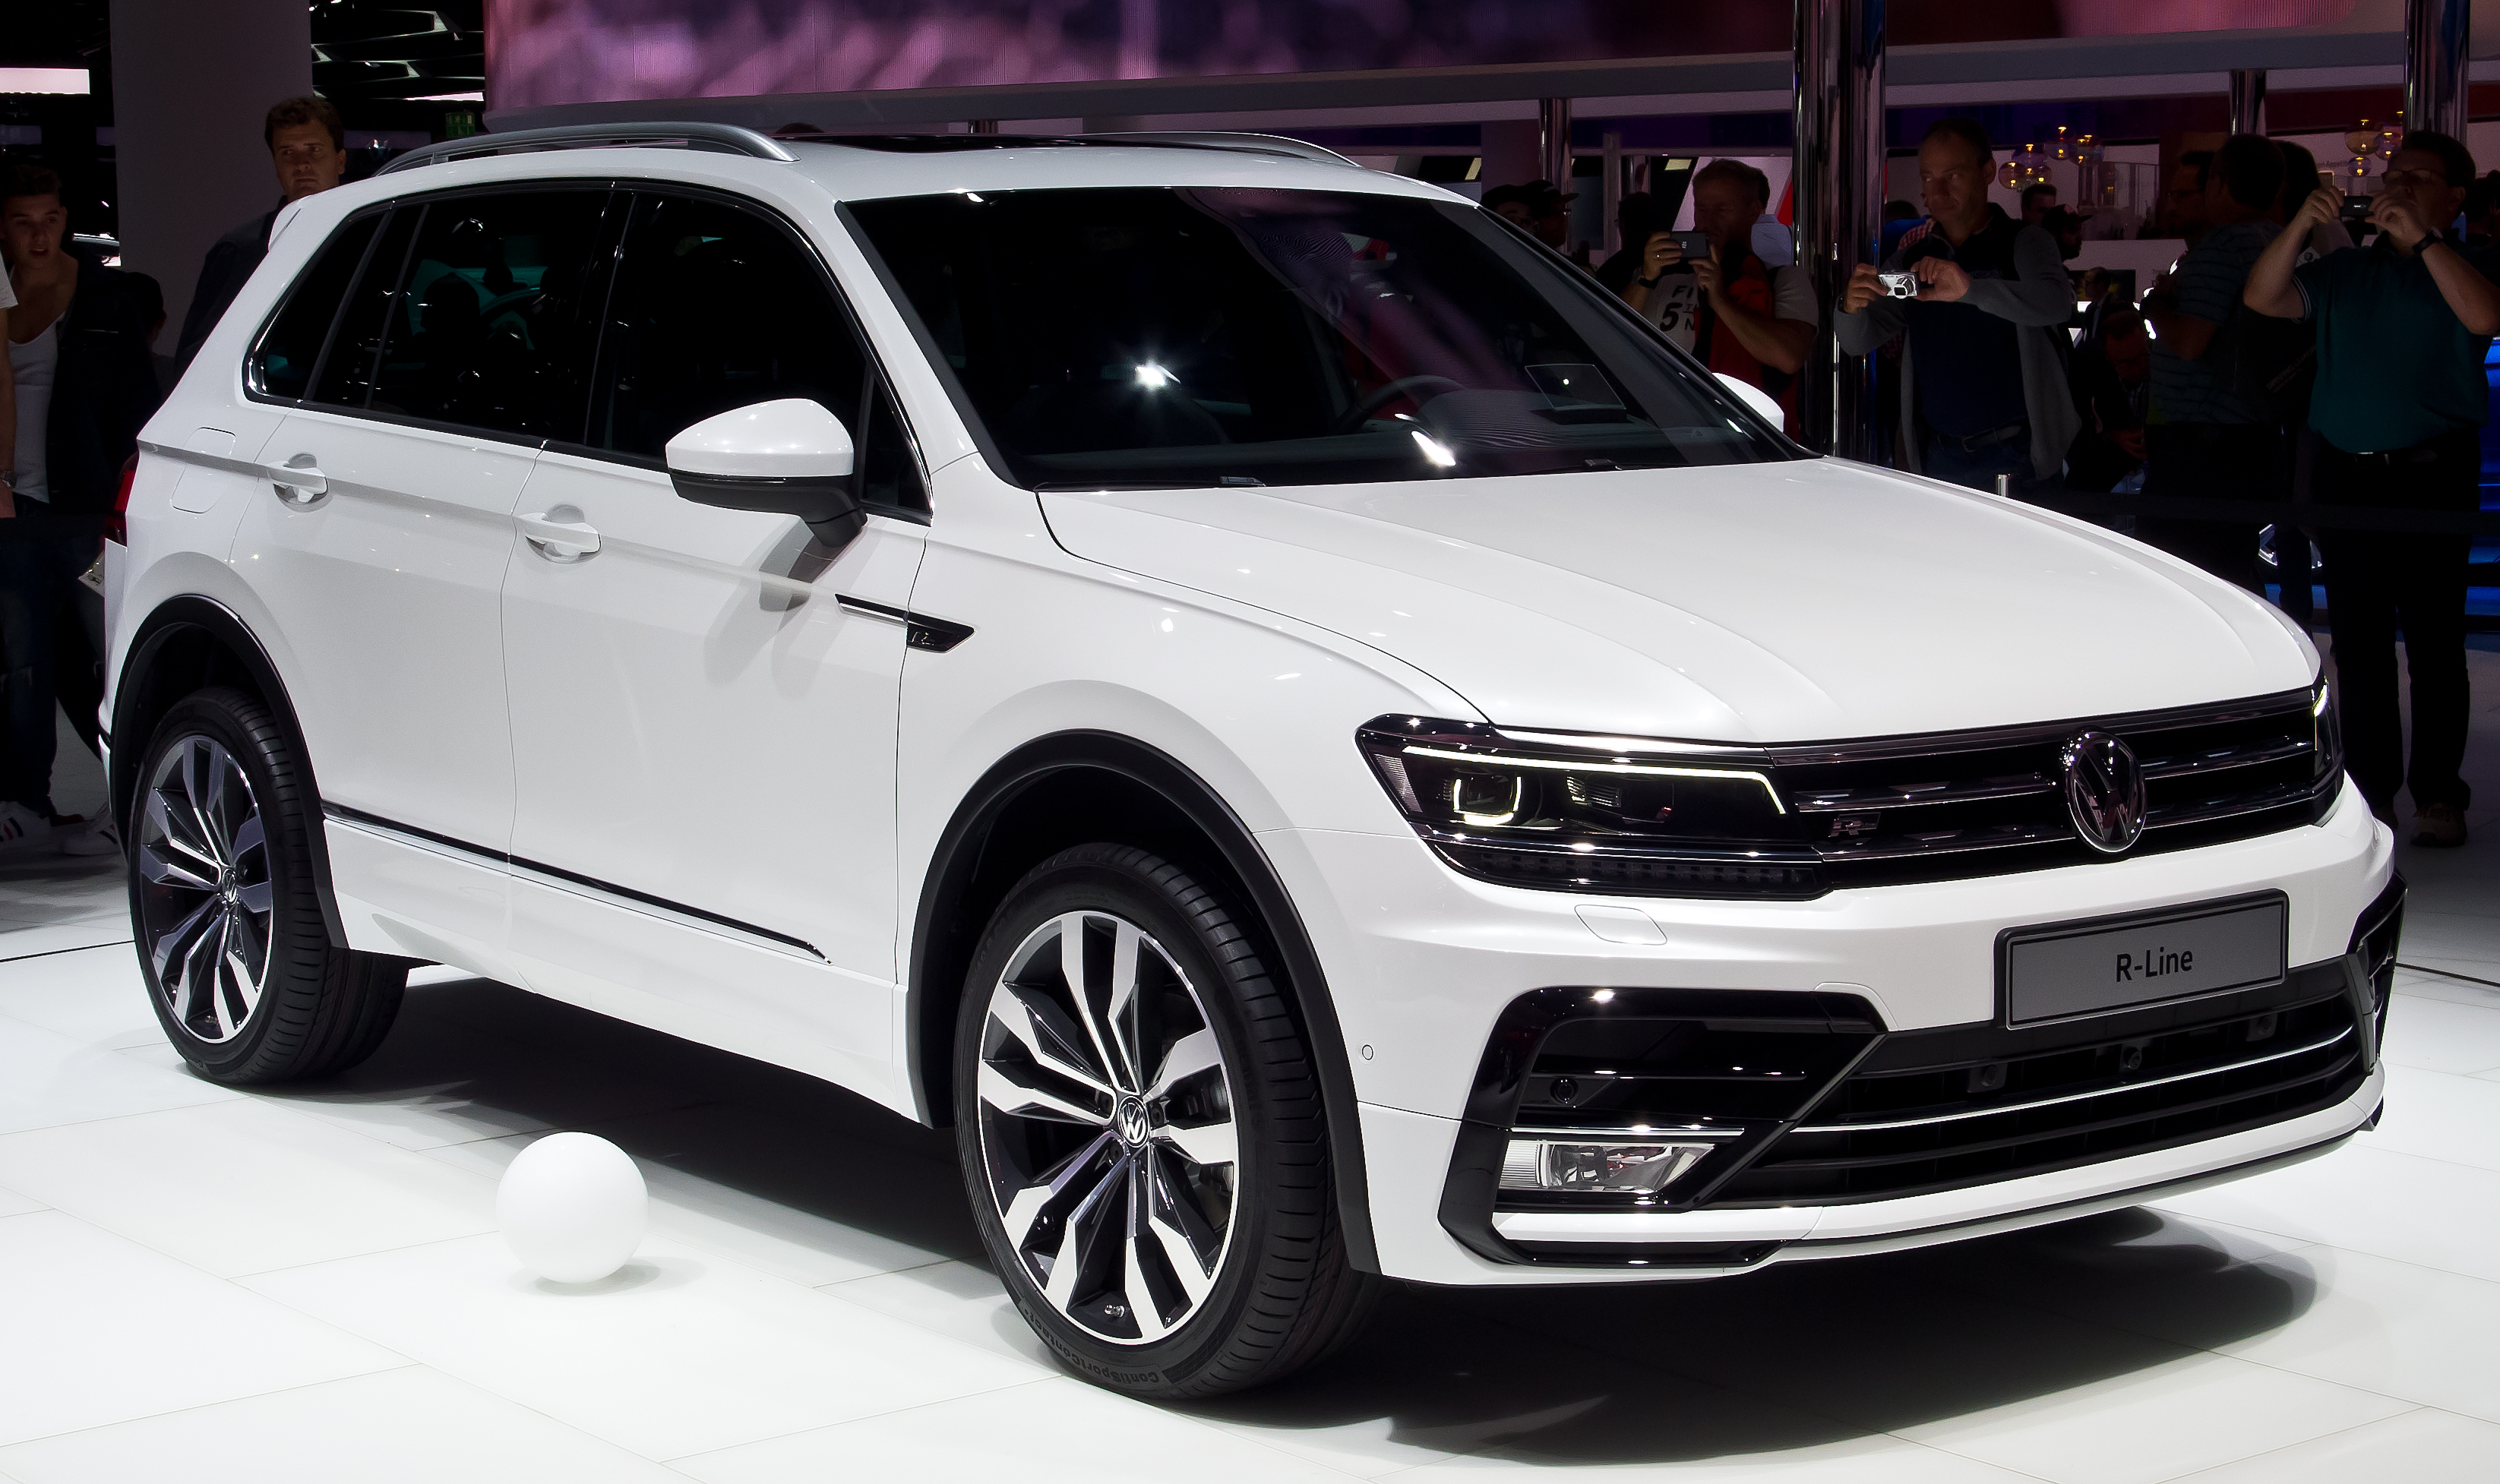 file vw tiguan 2 0 tdi 4motion r line ii frontansicht 19 september 2015. Black Bedroom Furniture Sets. Home Design Ideas